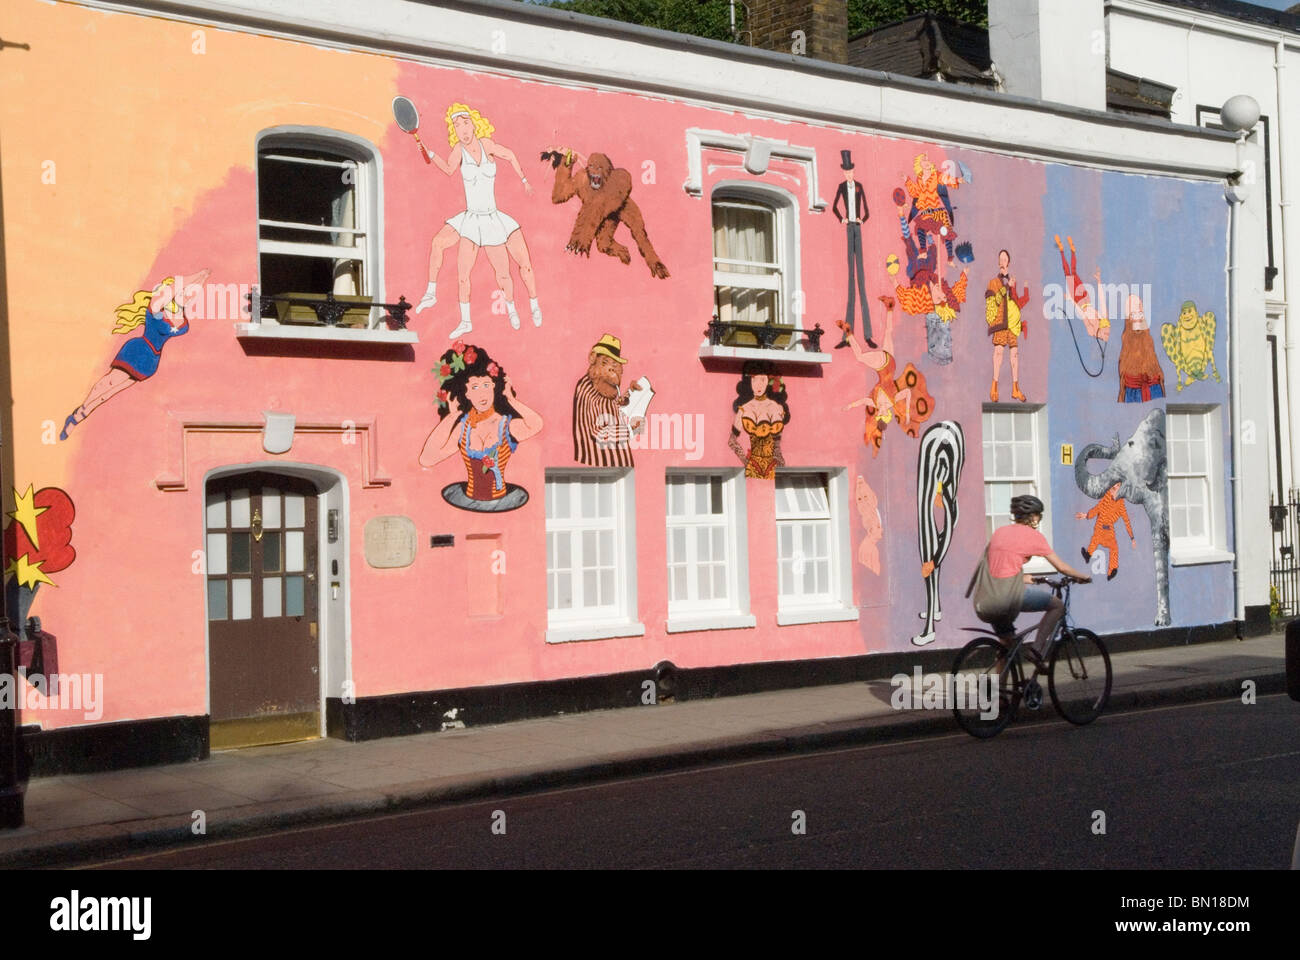 chelsea arts club london redecoration their building in old church chelsea arts club london redecoration their building in old church street art work murals by tony common temporary wall mural